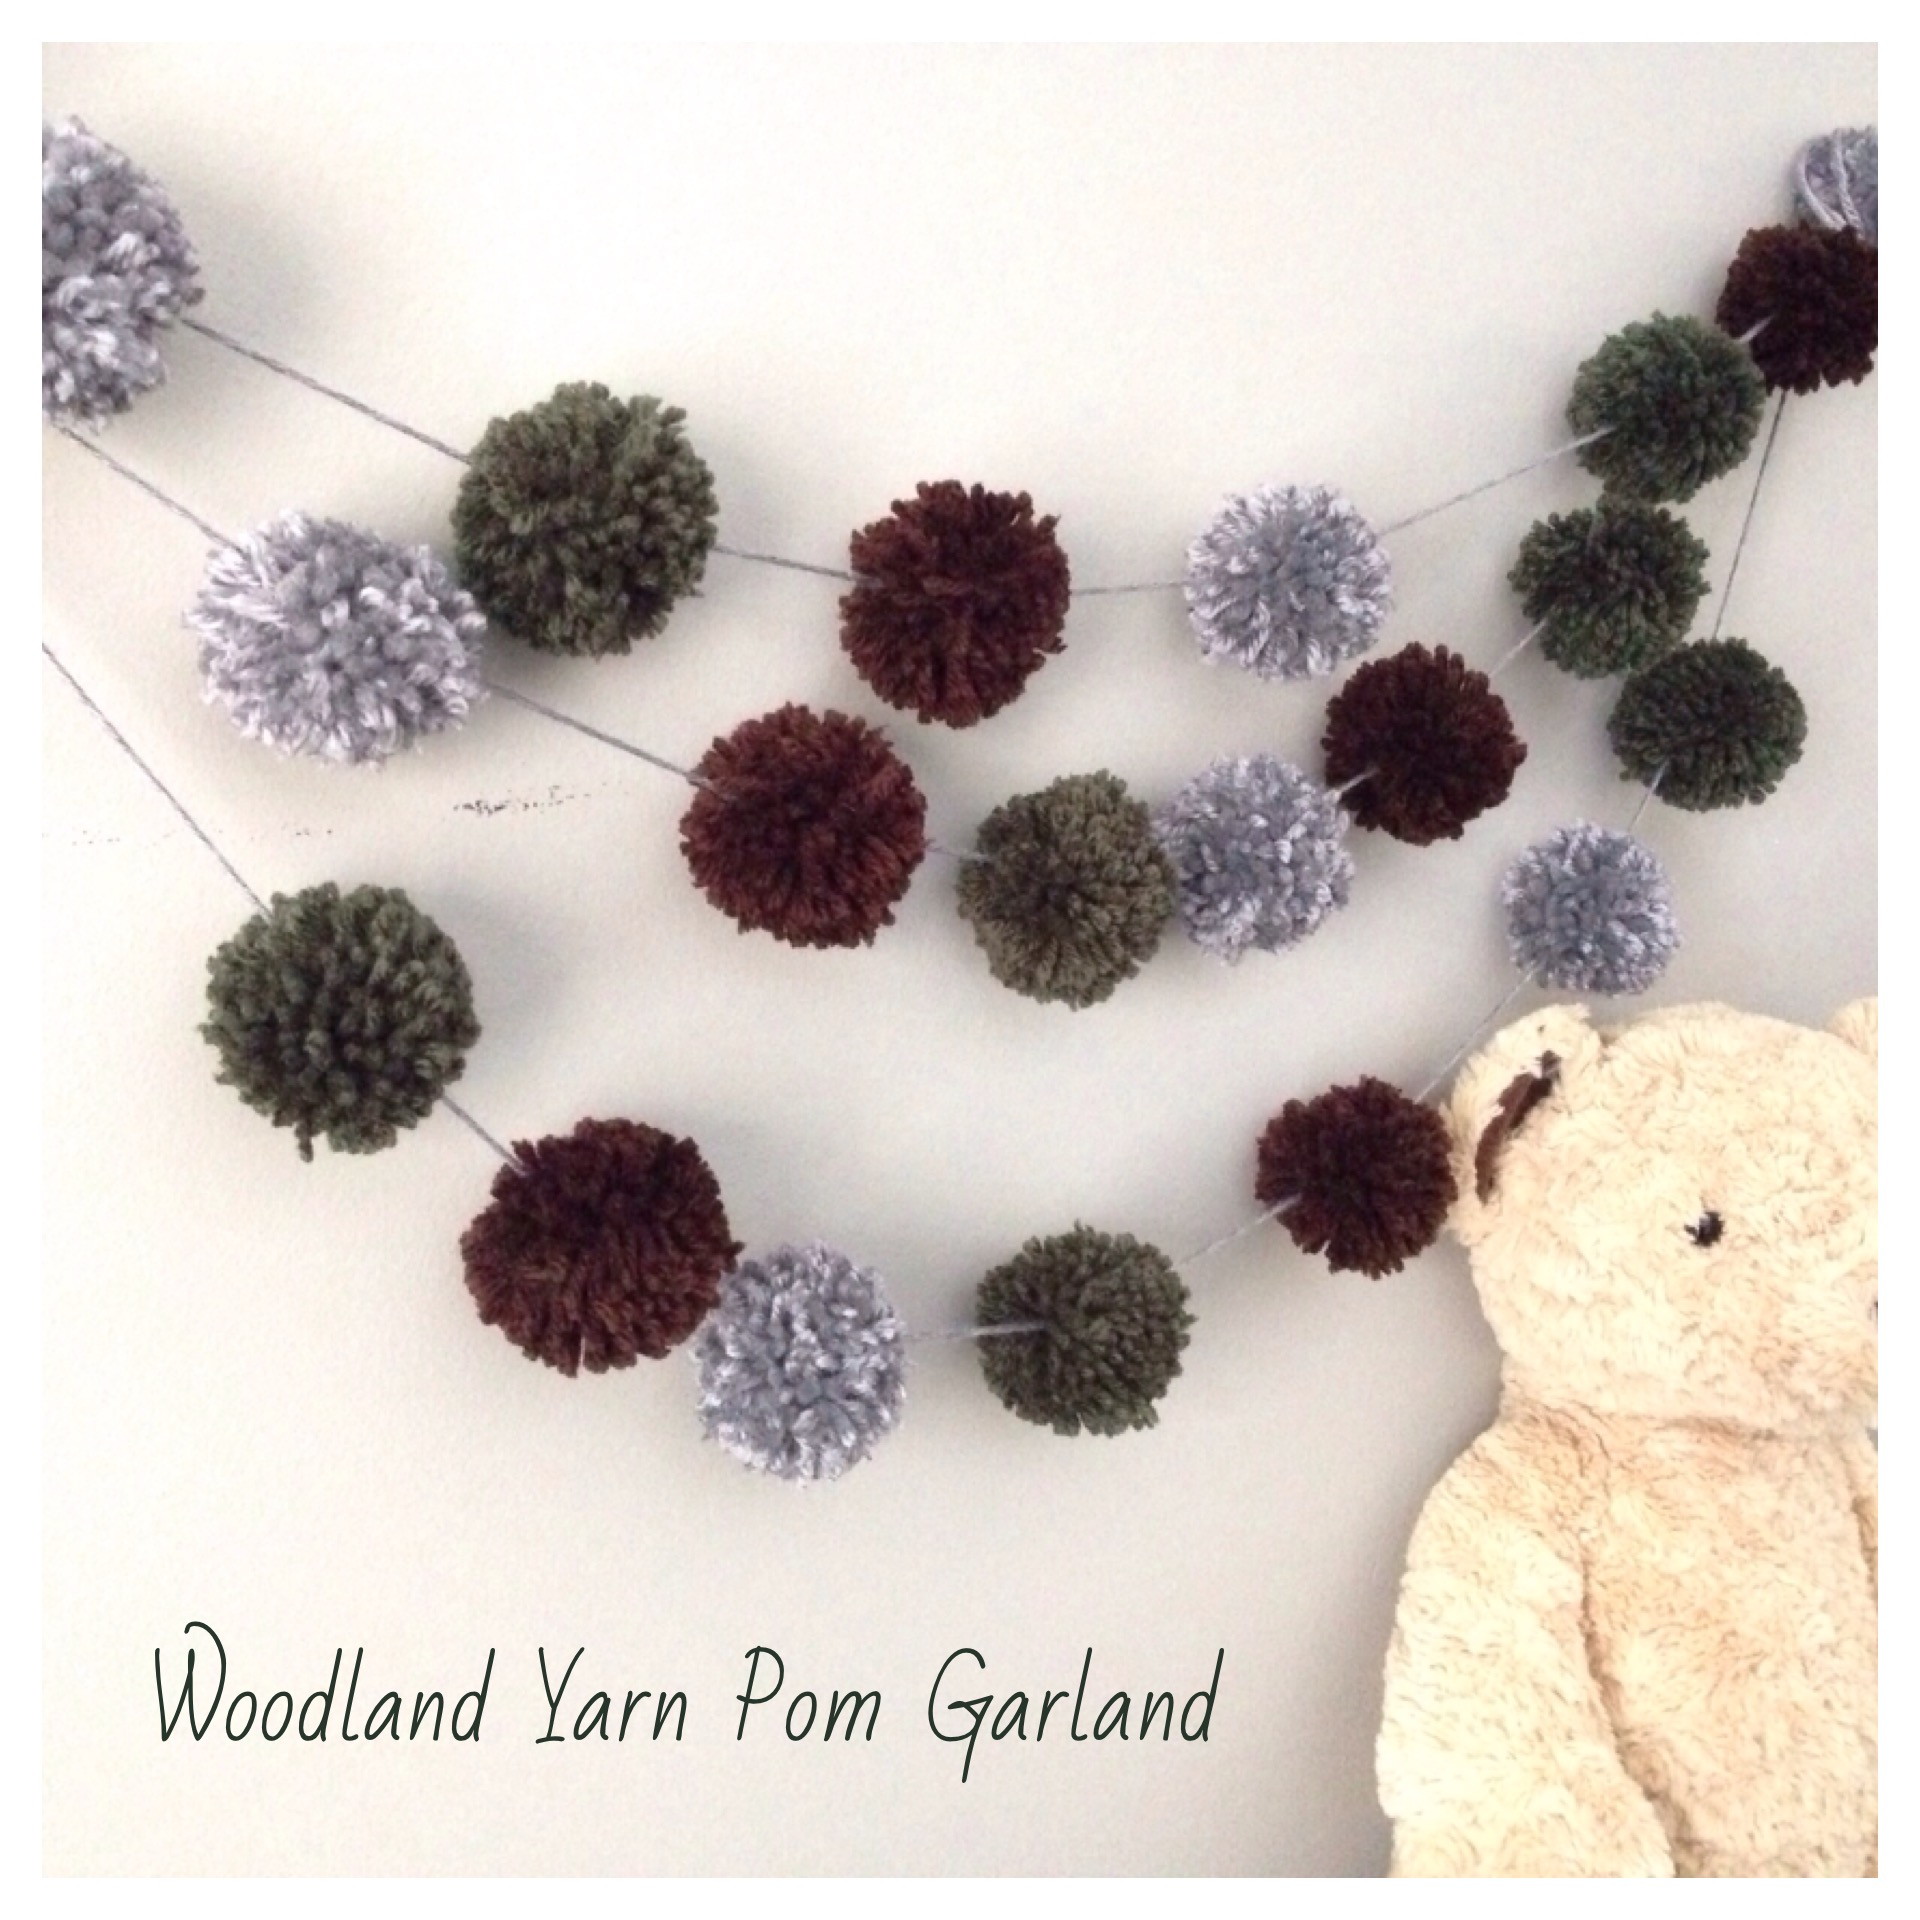 Yarn Pompom Garland Woodland Theme Green Brown Grey Garland Nursery Decor Kids Photoshoot Prop Sold By Atticus Theo On Storenvy